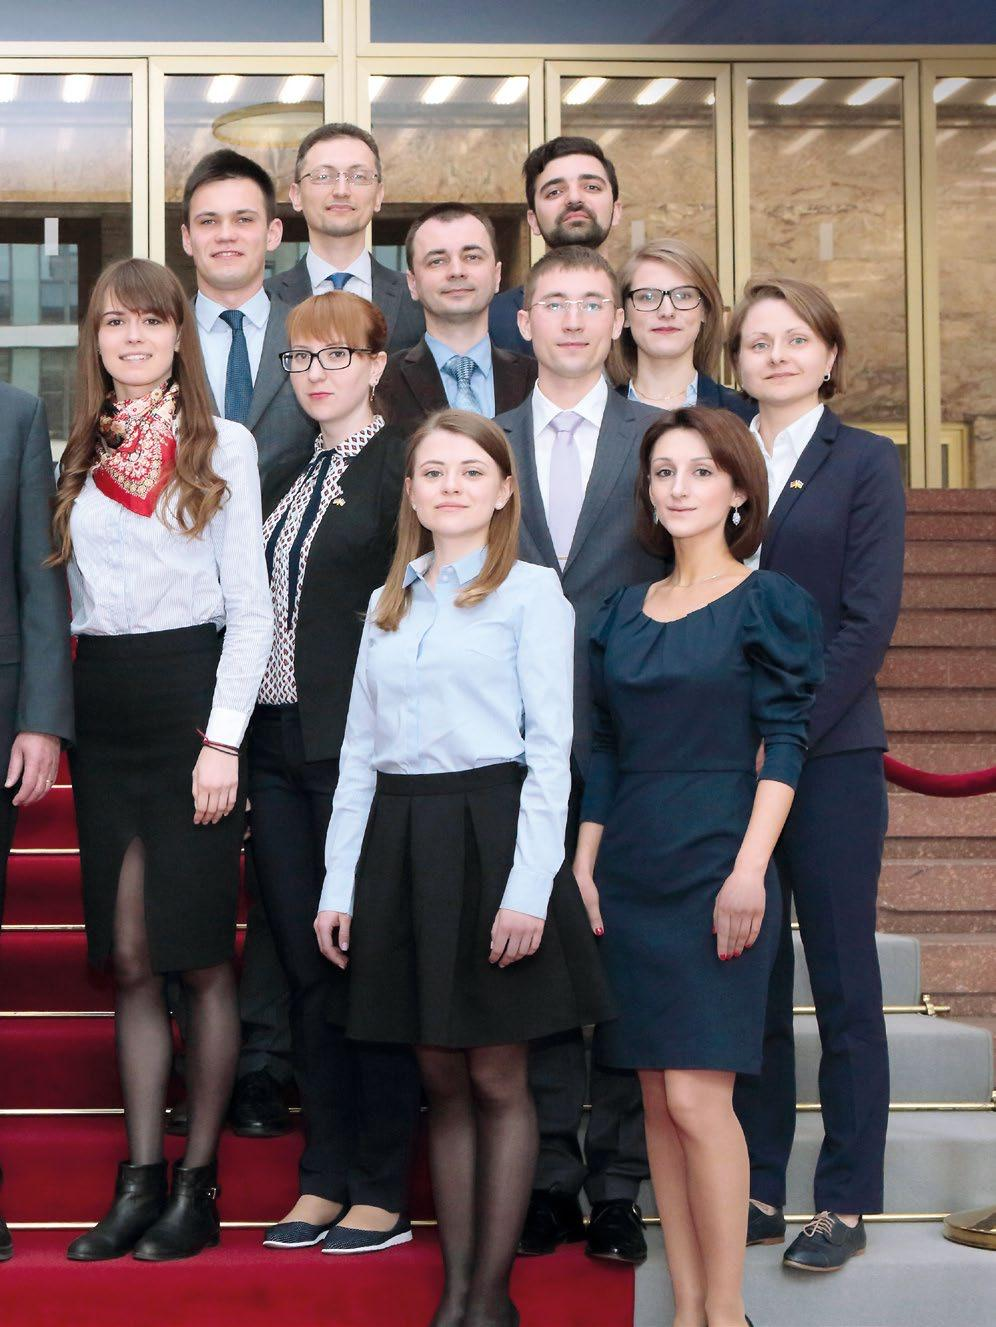 High Level Experts Programme Ukraine 23 High Level Experts Programme Ukraine 5 April 22 April 2016 1 st row, from left to right: Susanne Lada a (First Secretary at the Federal Foreign Office in